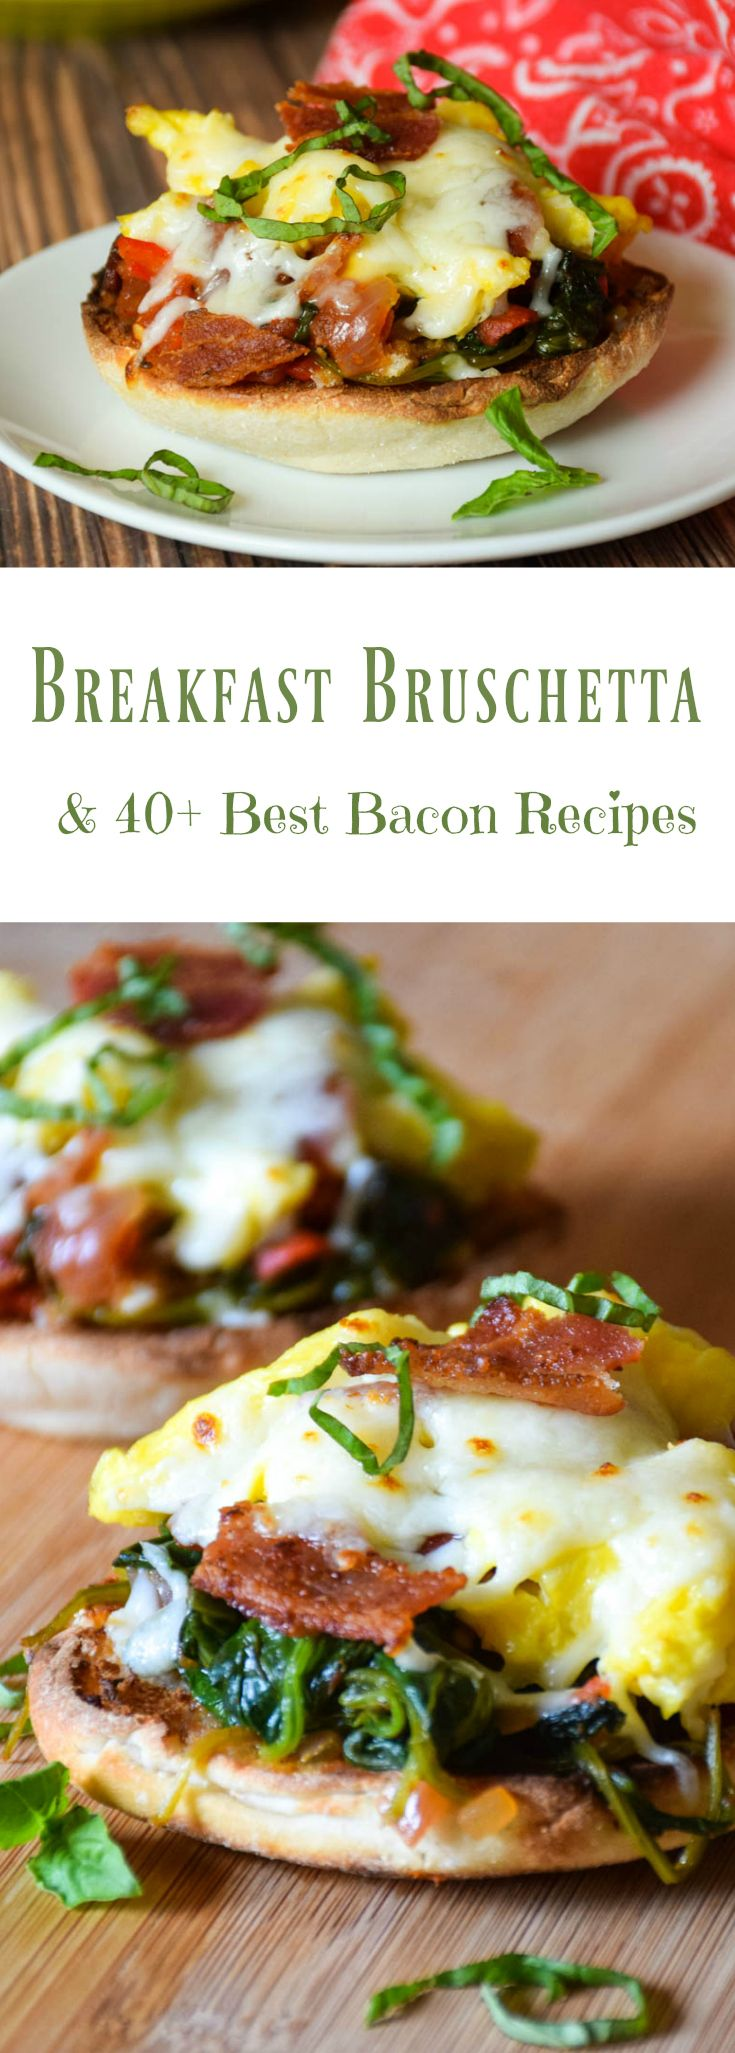 Breakfast Bruschetta - eggs and bacon over a spinach∕tomato bruschetta top off a toasty english muffin. Grab this recipe and over 40 more best bacon recipes! #SundaySupper